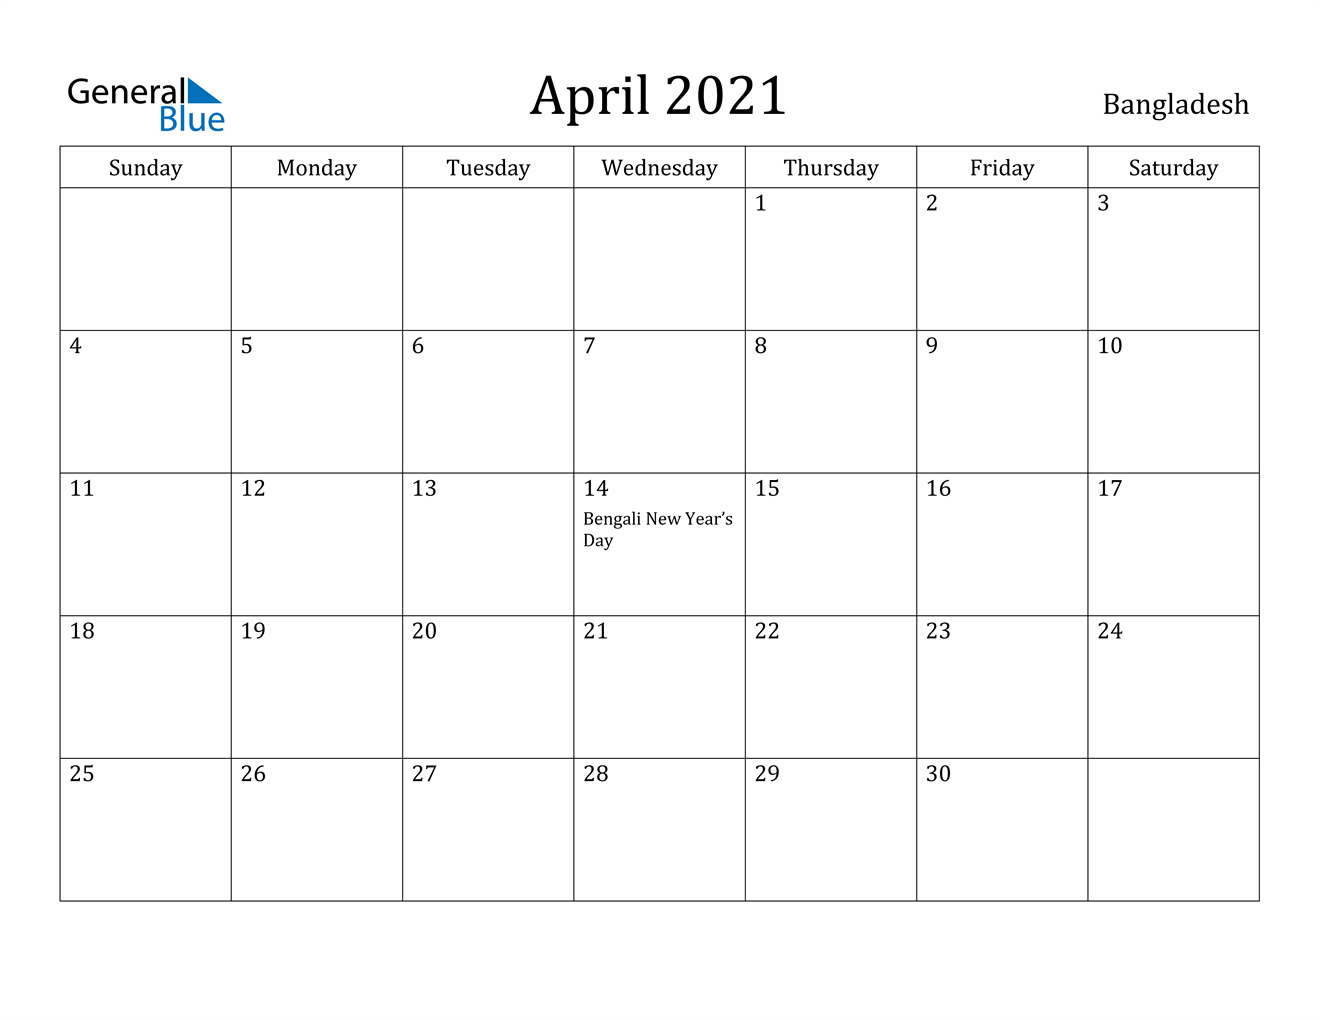 April 2021 Calendar - Bangladesh